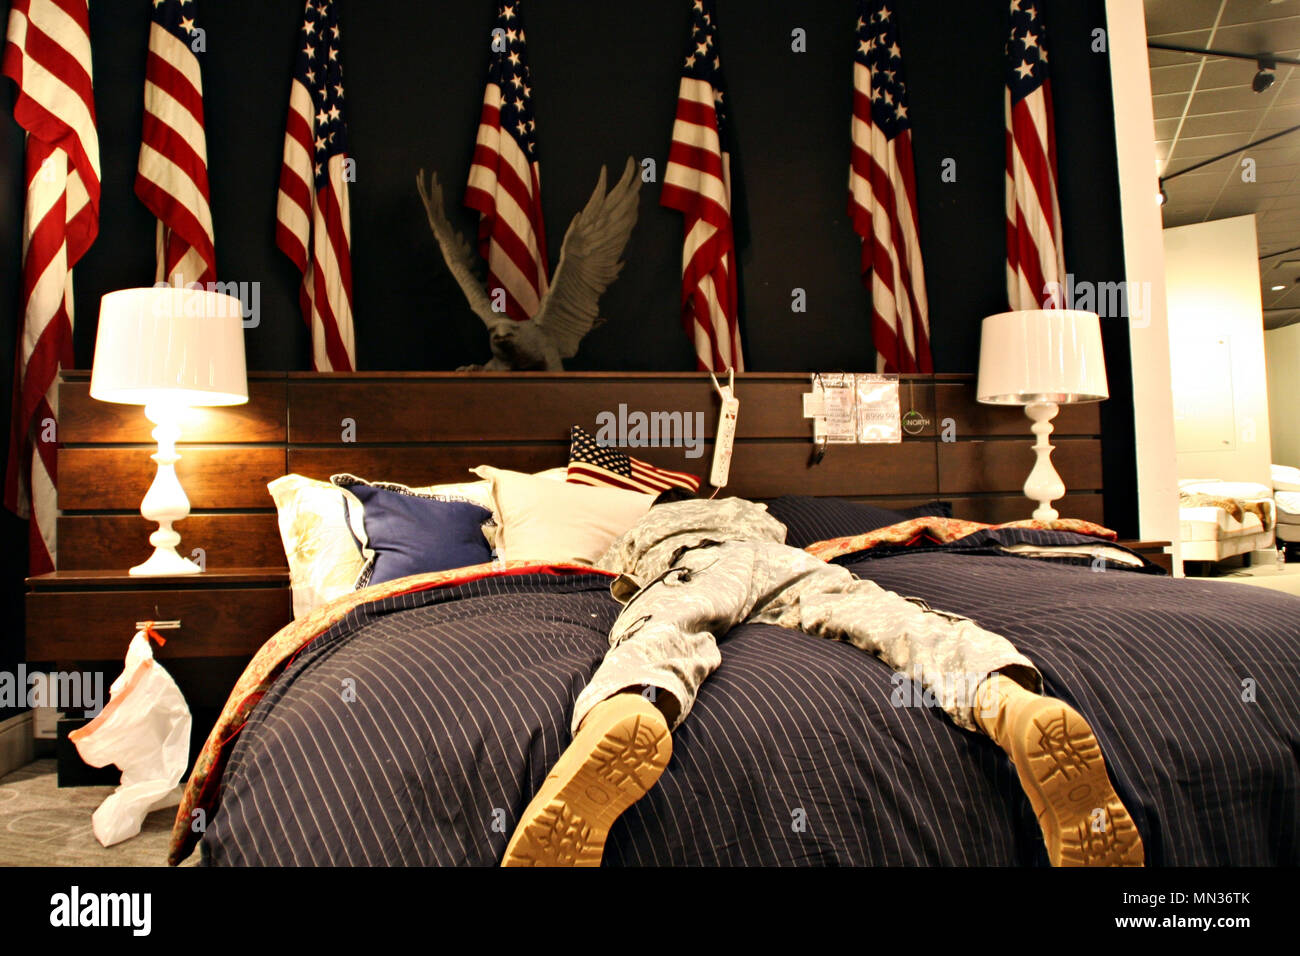 Texas Army National Guard Soldiers Rest In A Gallery Furniture Store